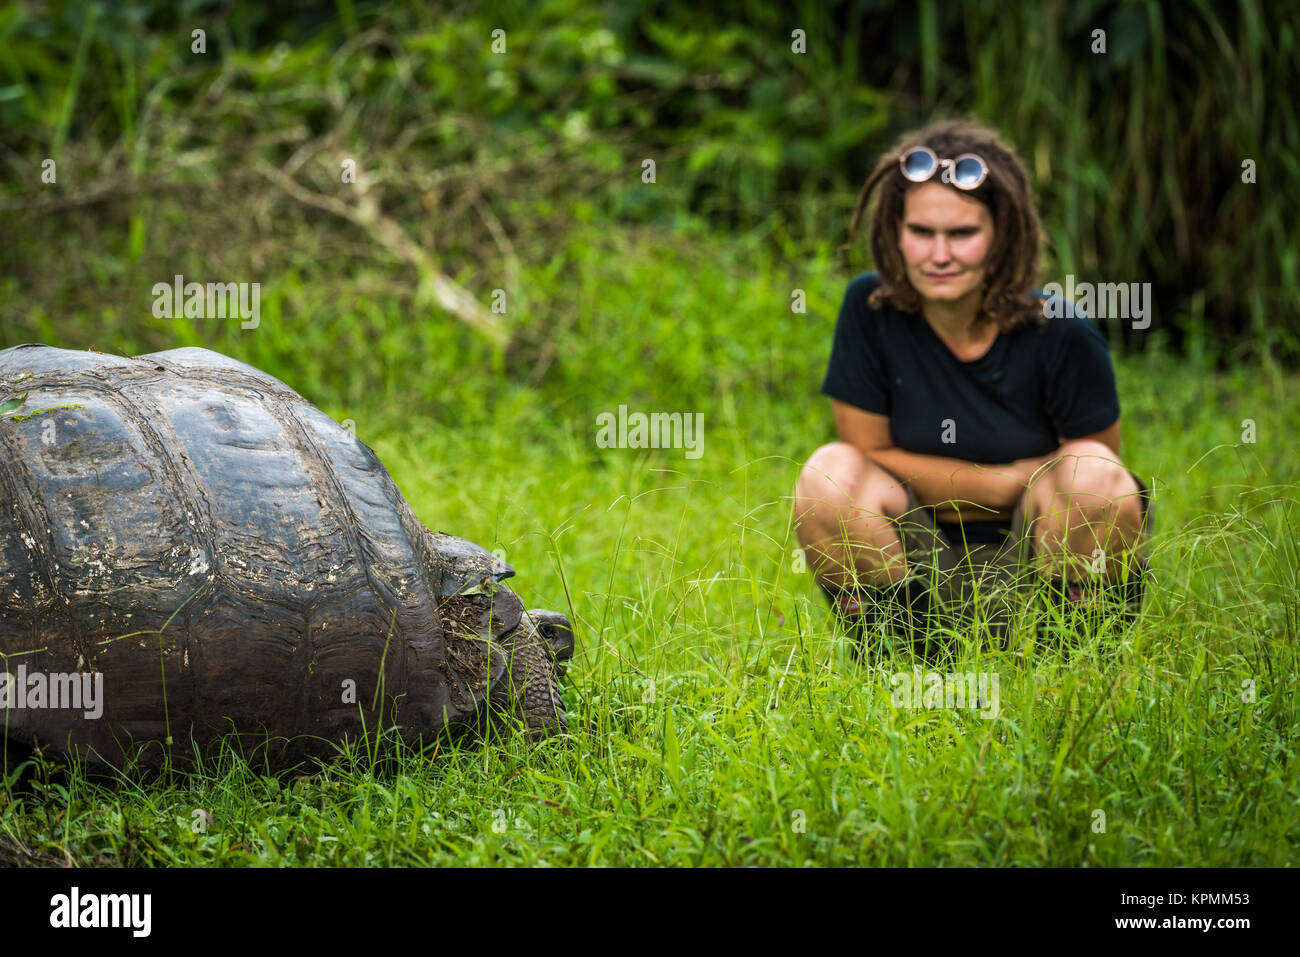 Woman staring intensely at Galapagos giant tortoise - Stock Image